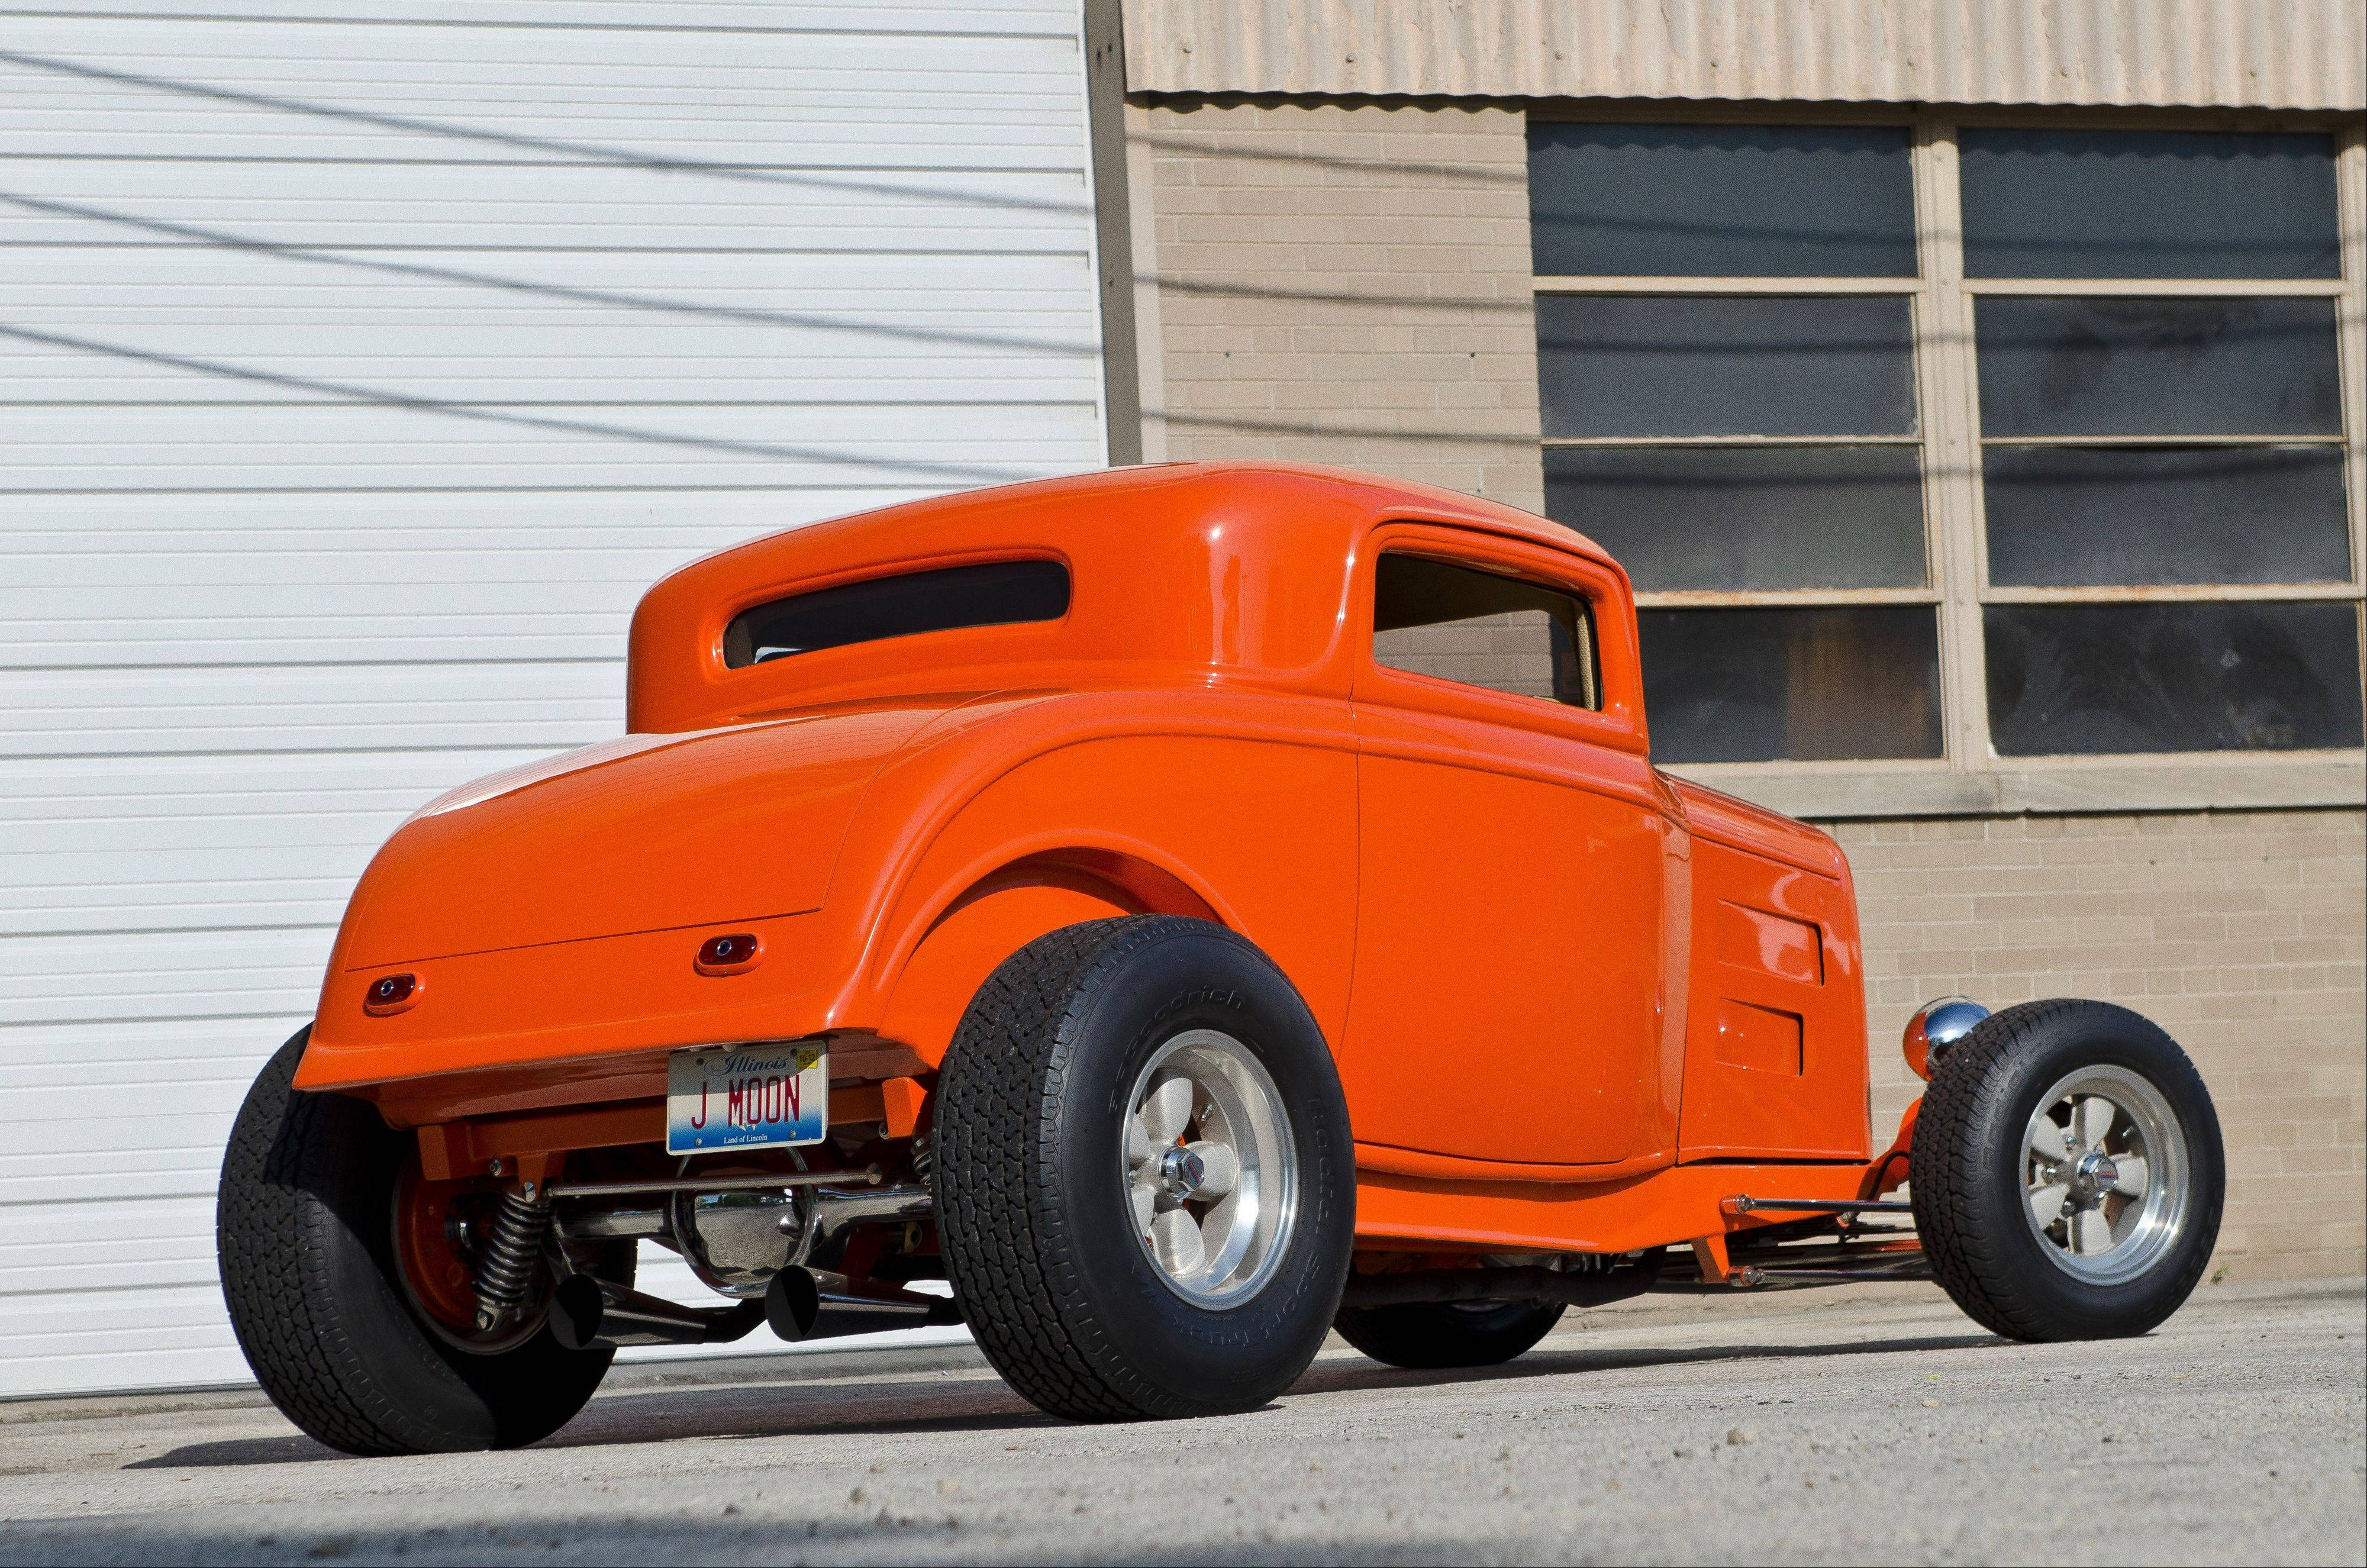 The 1932 Ford made its maiden voyage was to the 1985 Street Rod Nationals show in Minnesota.